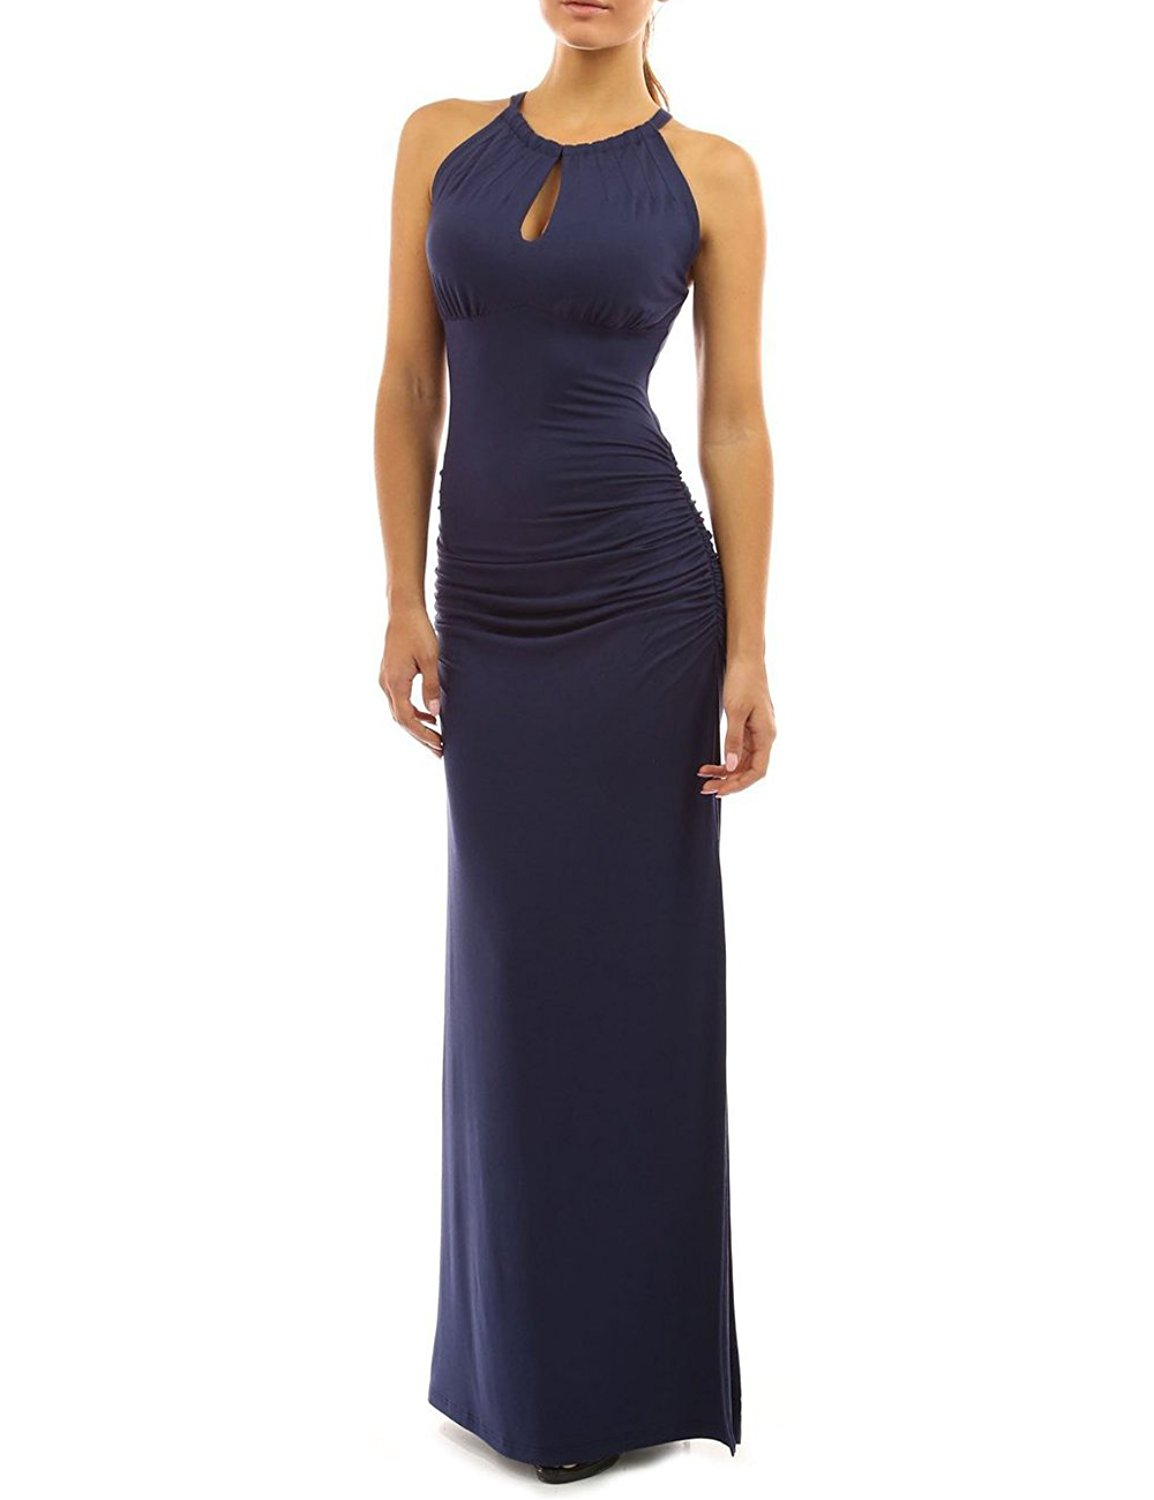 7765ab769c Get Quotations · BEDTREE Women's Maxi Ruched Fold Elastic Bodycon Dresses  Sexy Halter Hollow Out Side Slit Formal Party